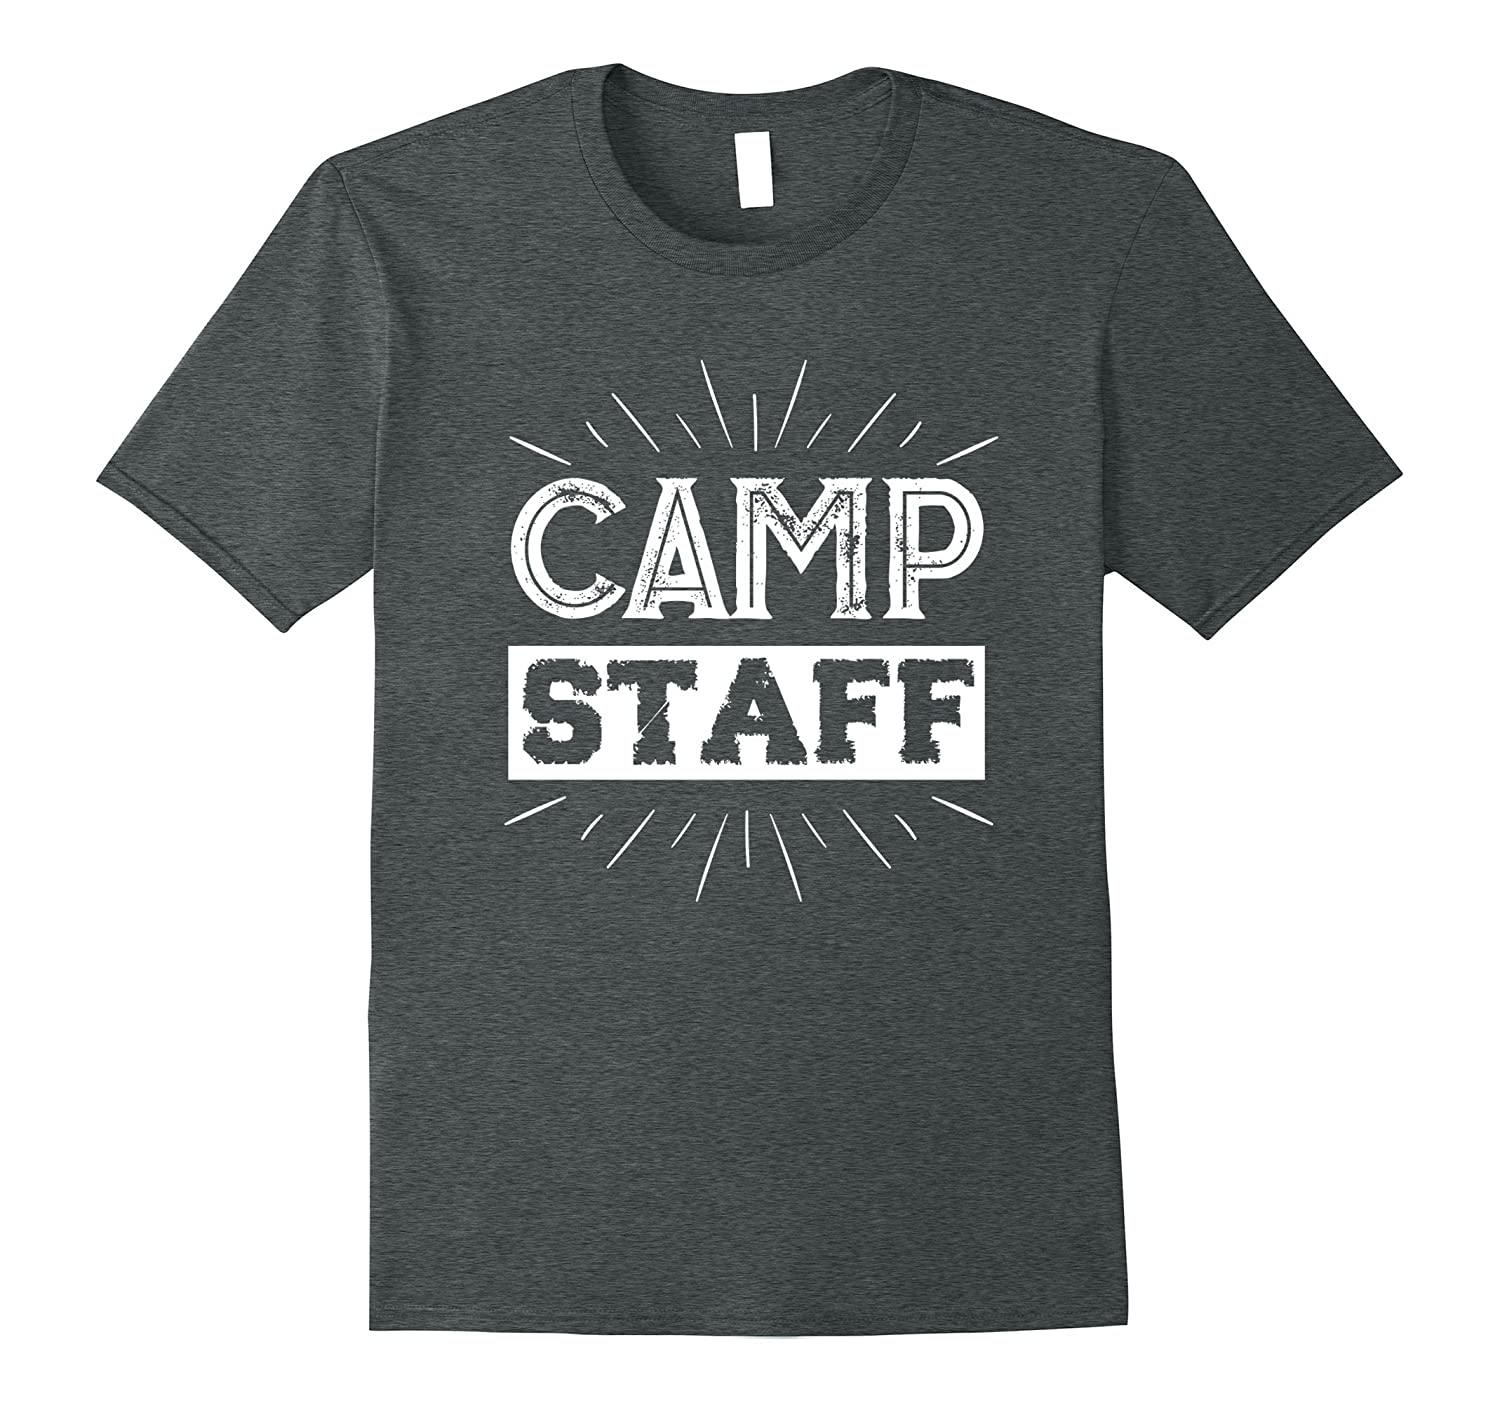 31a547f3b011 Summer Camp Counselor Staff T-Shirt funny Humor camping tee-Art ...